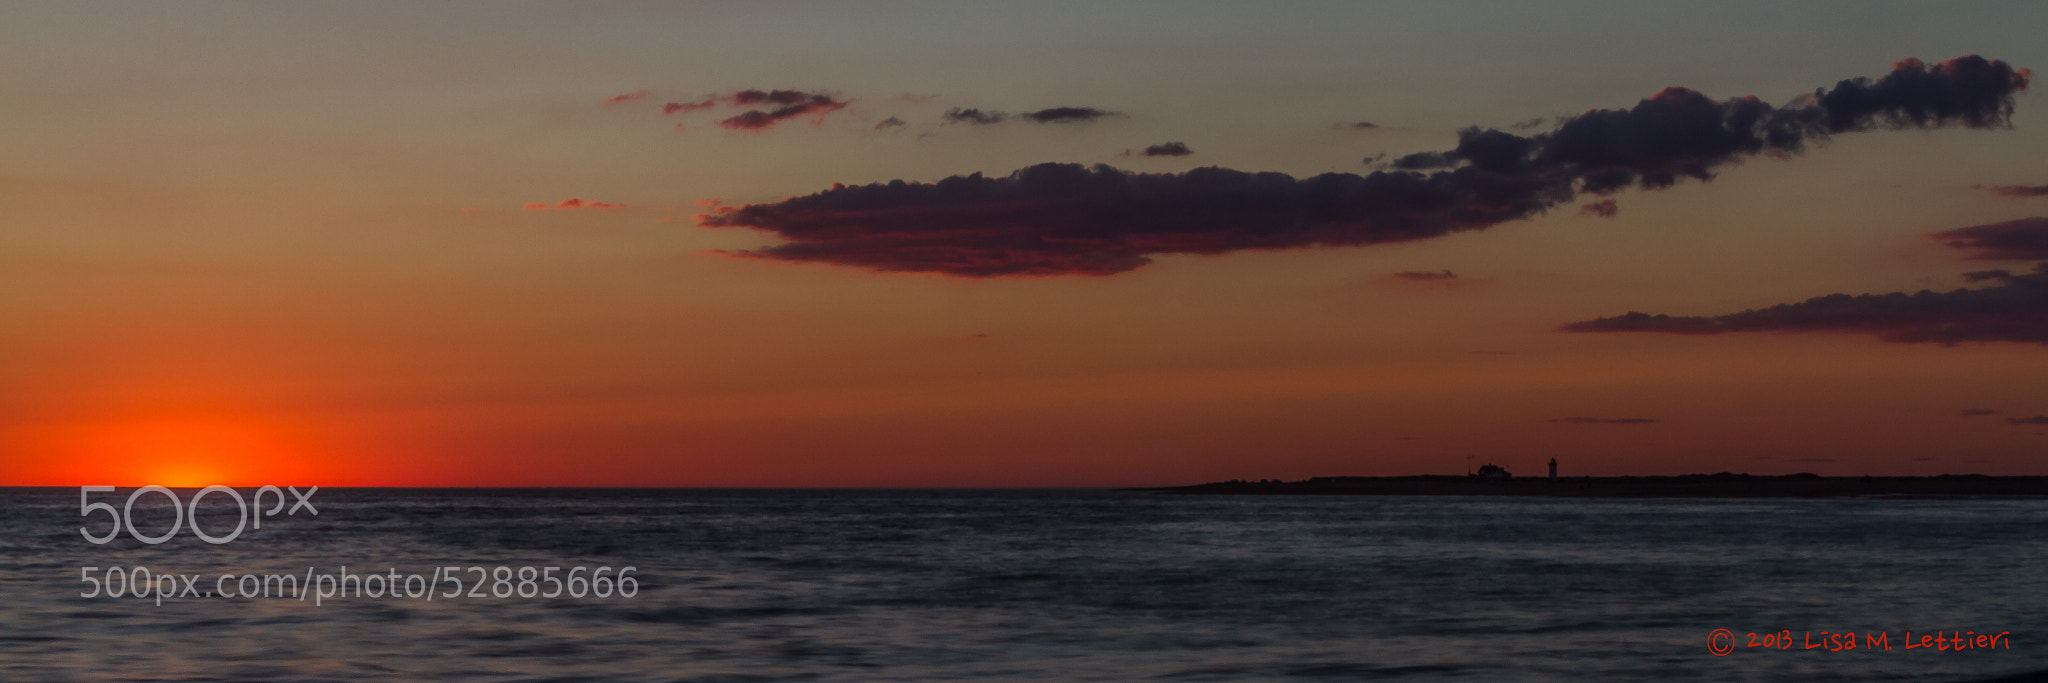 Photograph Cape Cod Sunset by Lisa Lettieri on 500px